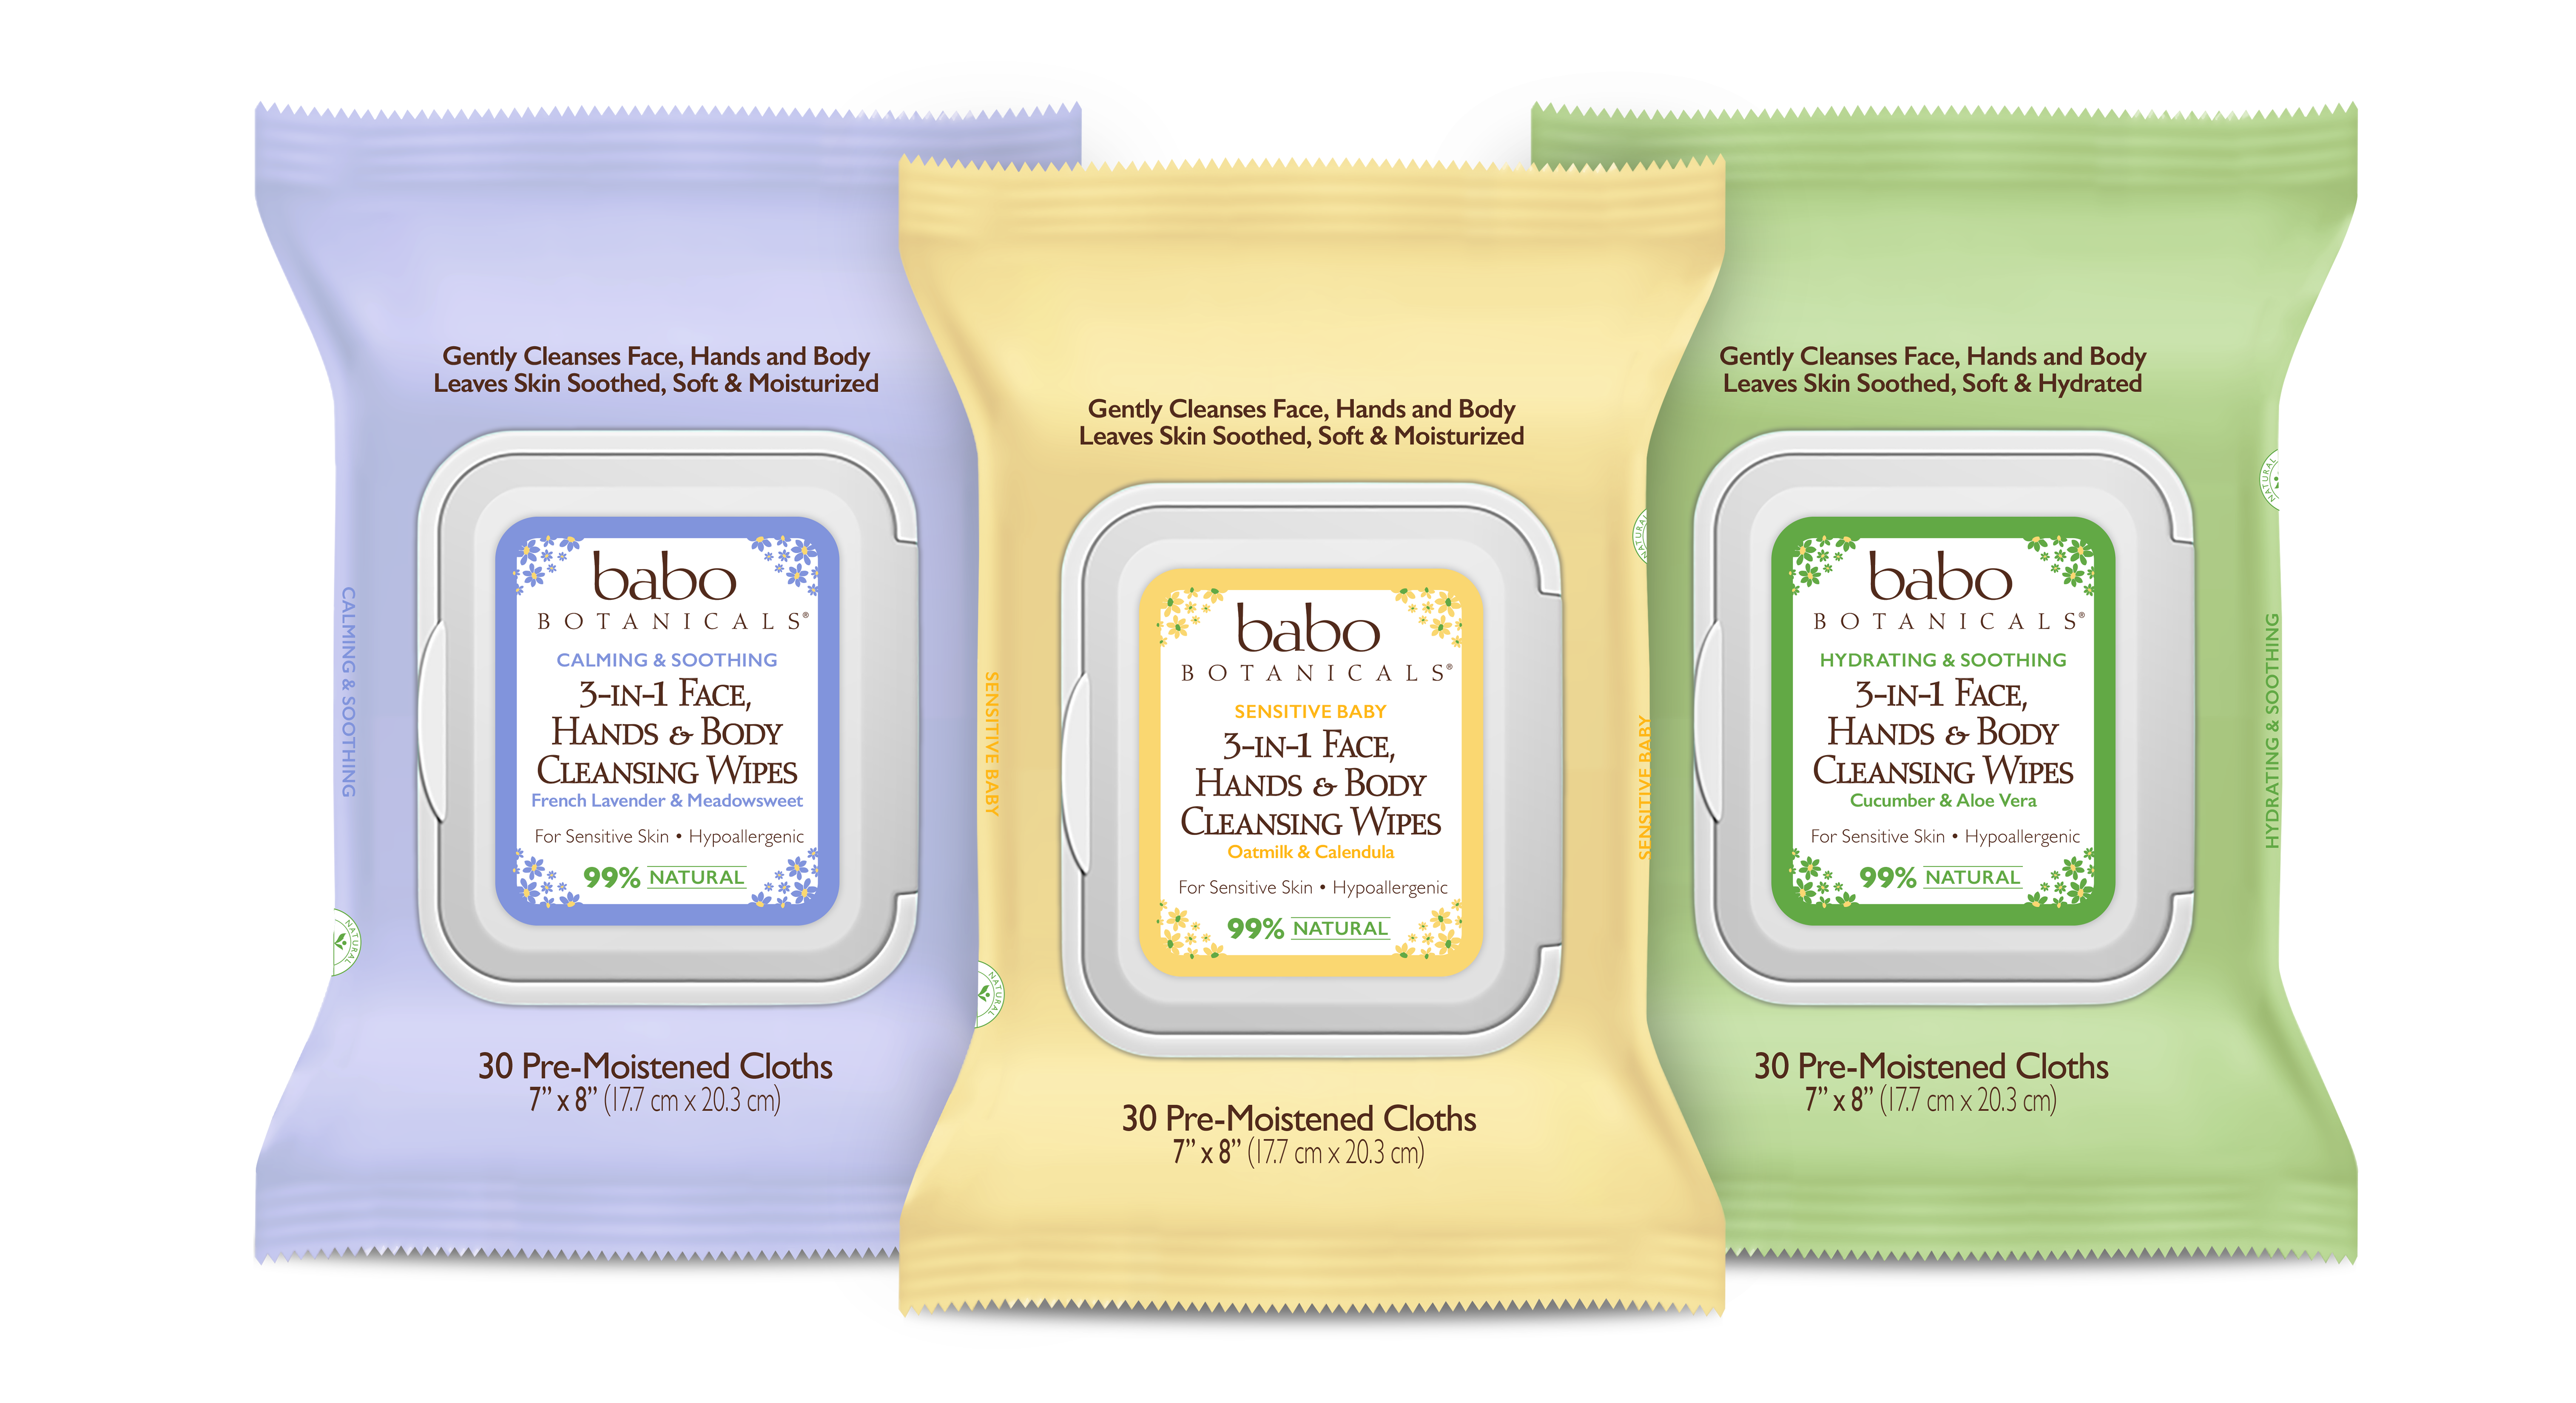 Babo Botanicals' 3-in-1 Multi-Tasking Cleansing Wipes for Face, Hands and Body